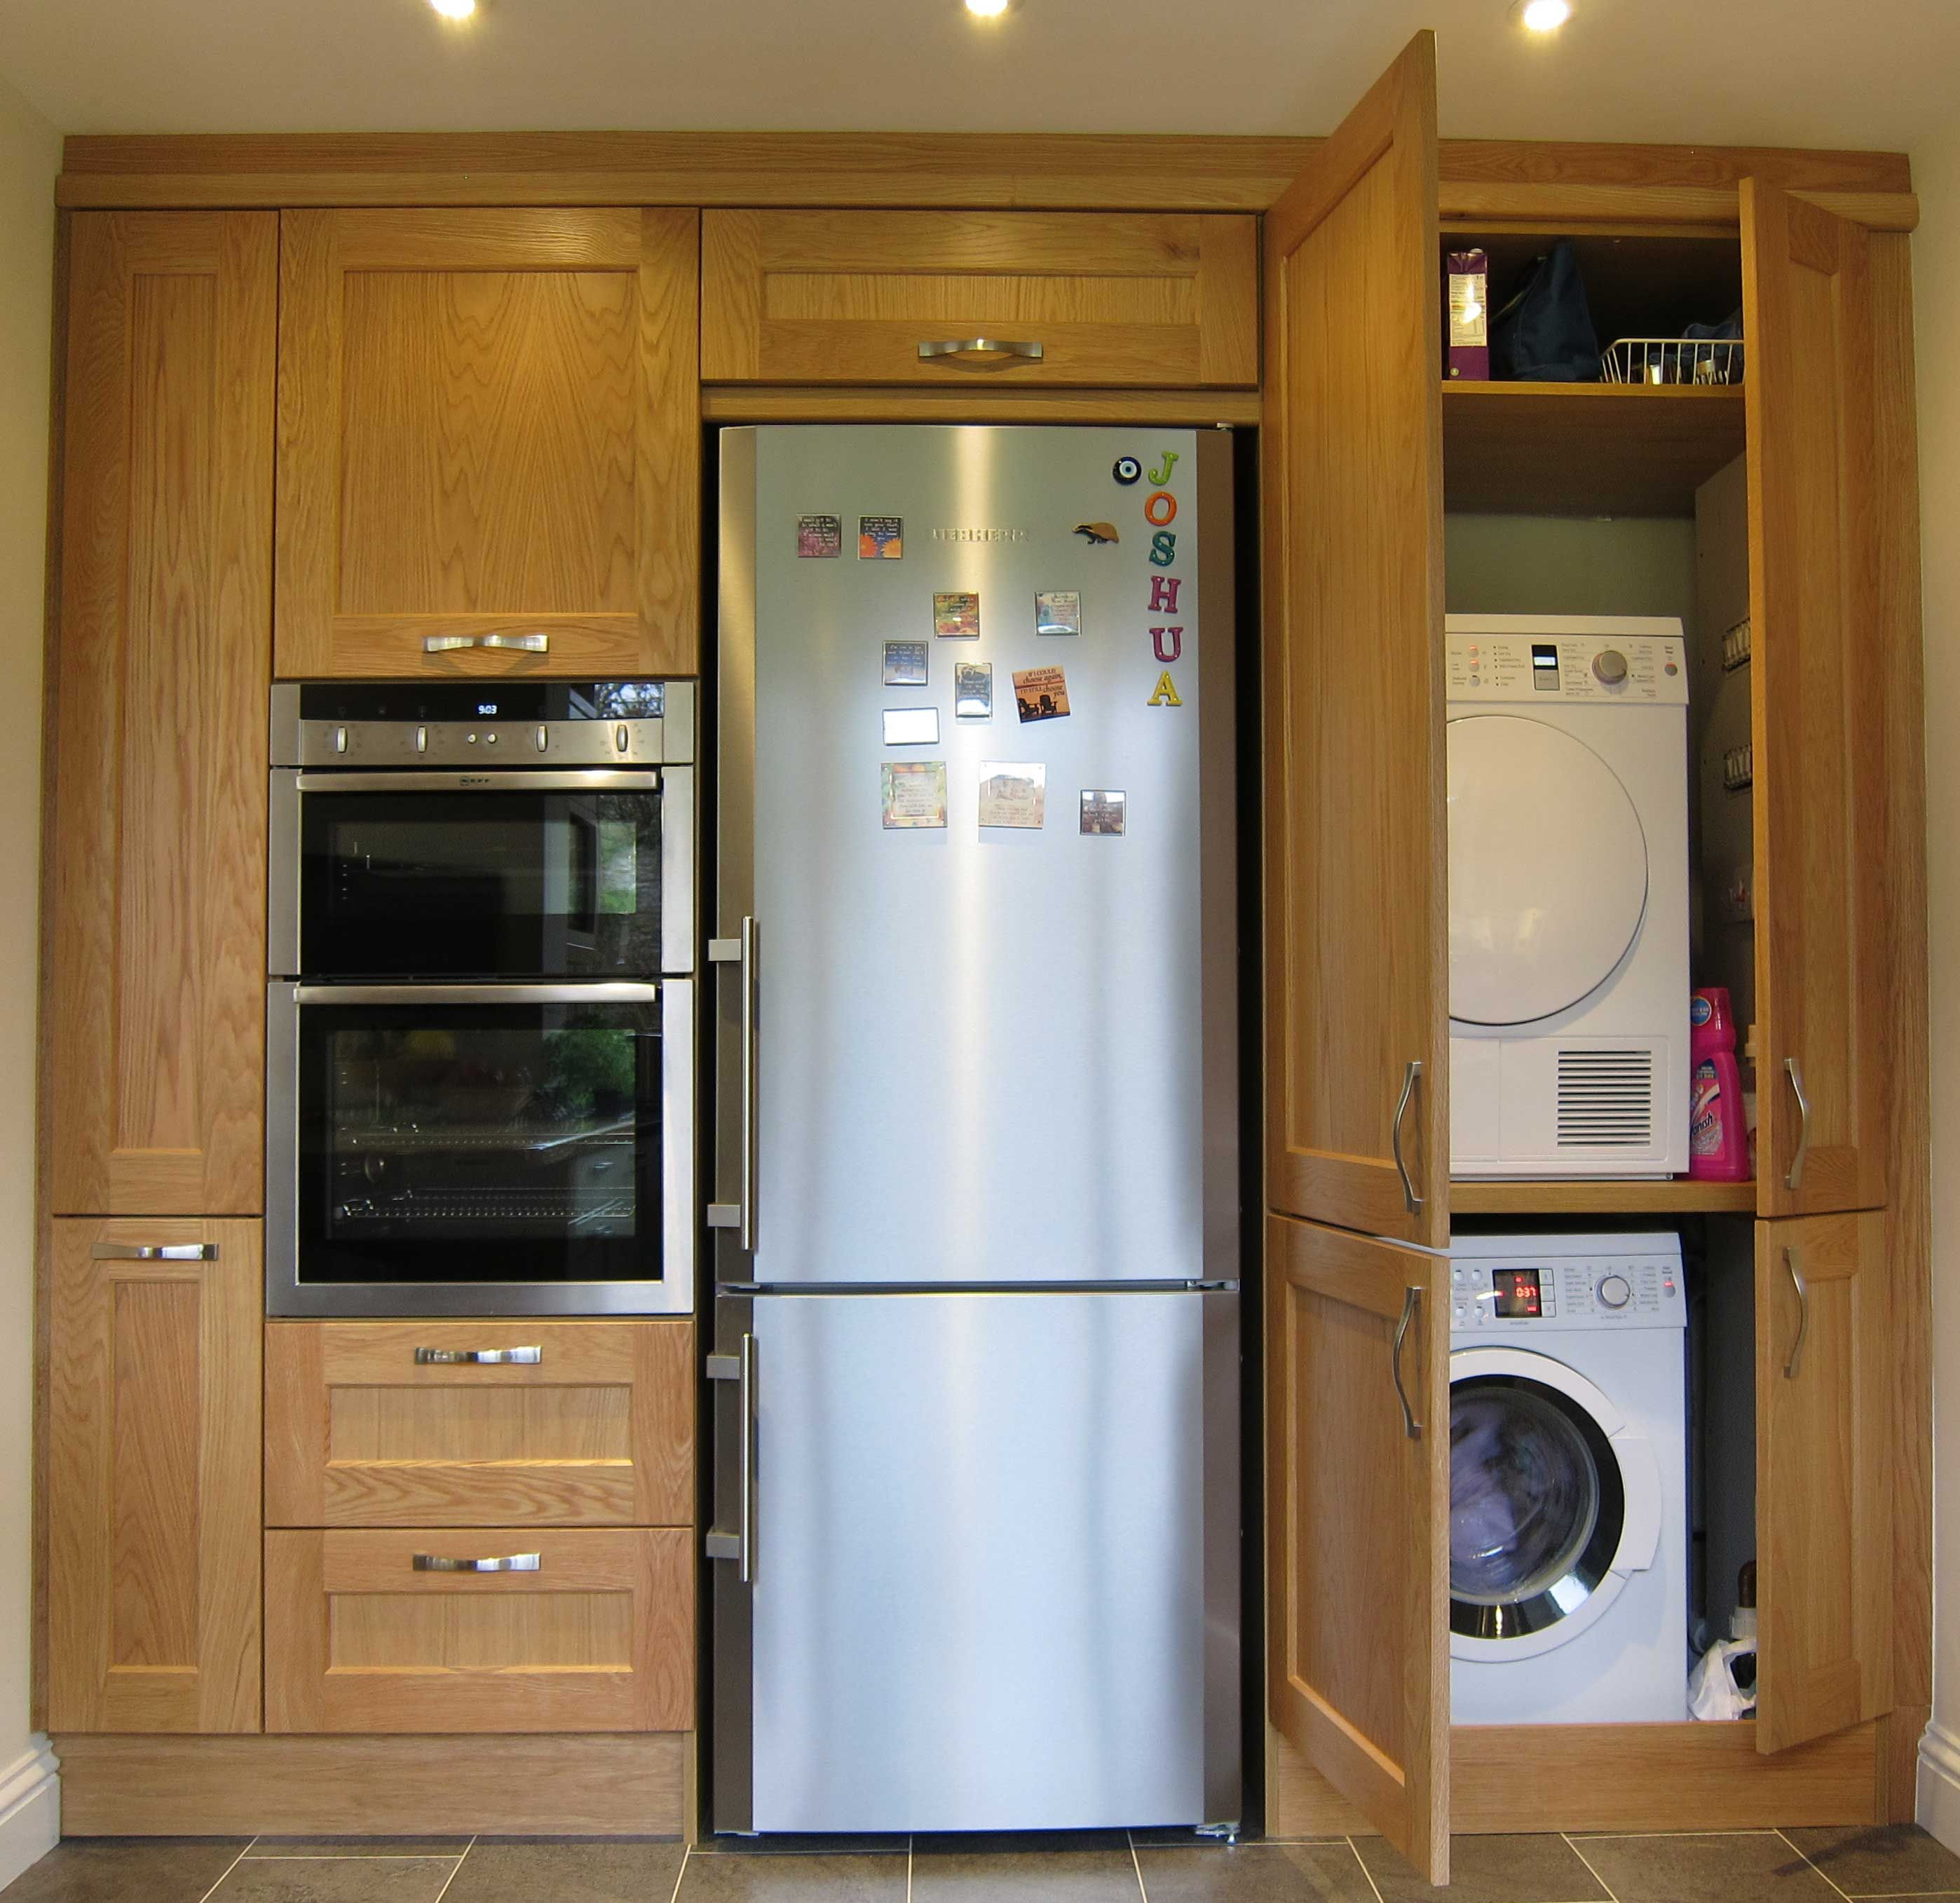 Tumble dryer on top of washing machine google search for Kitchen cabinet washing machine